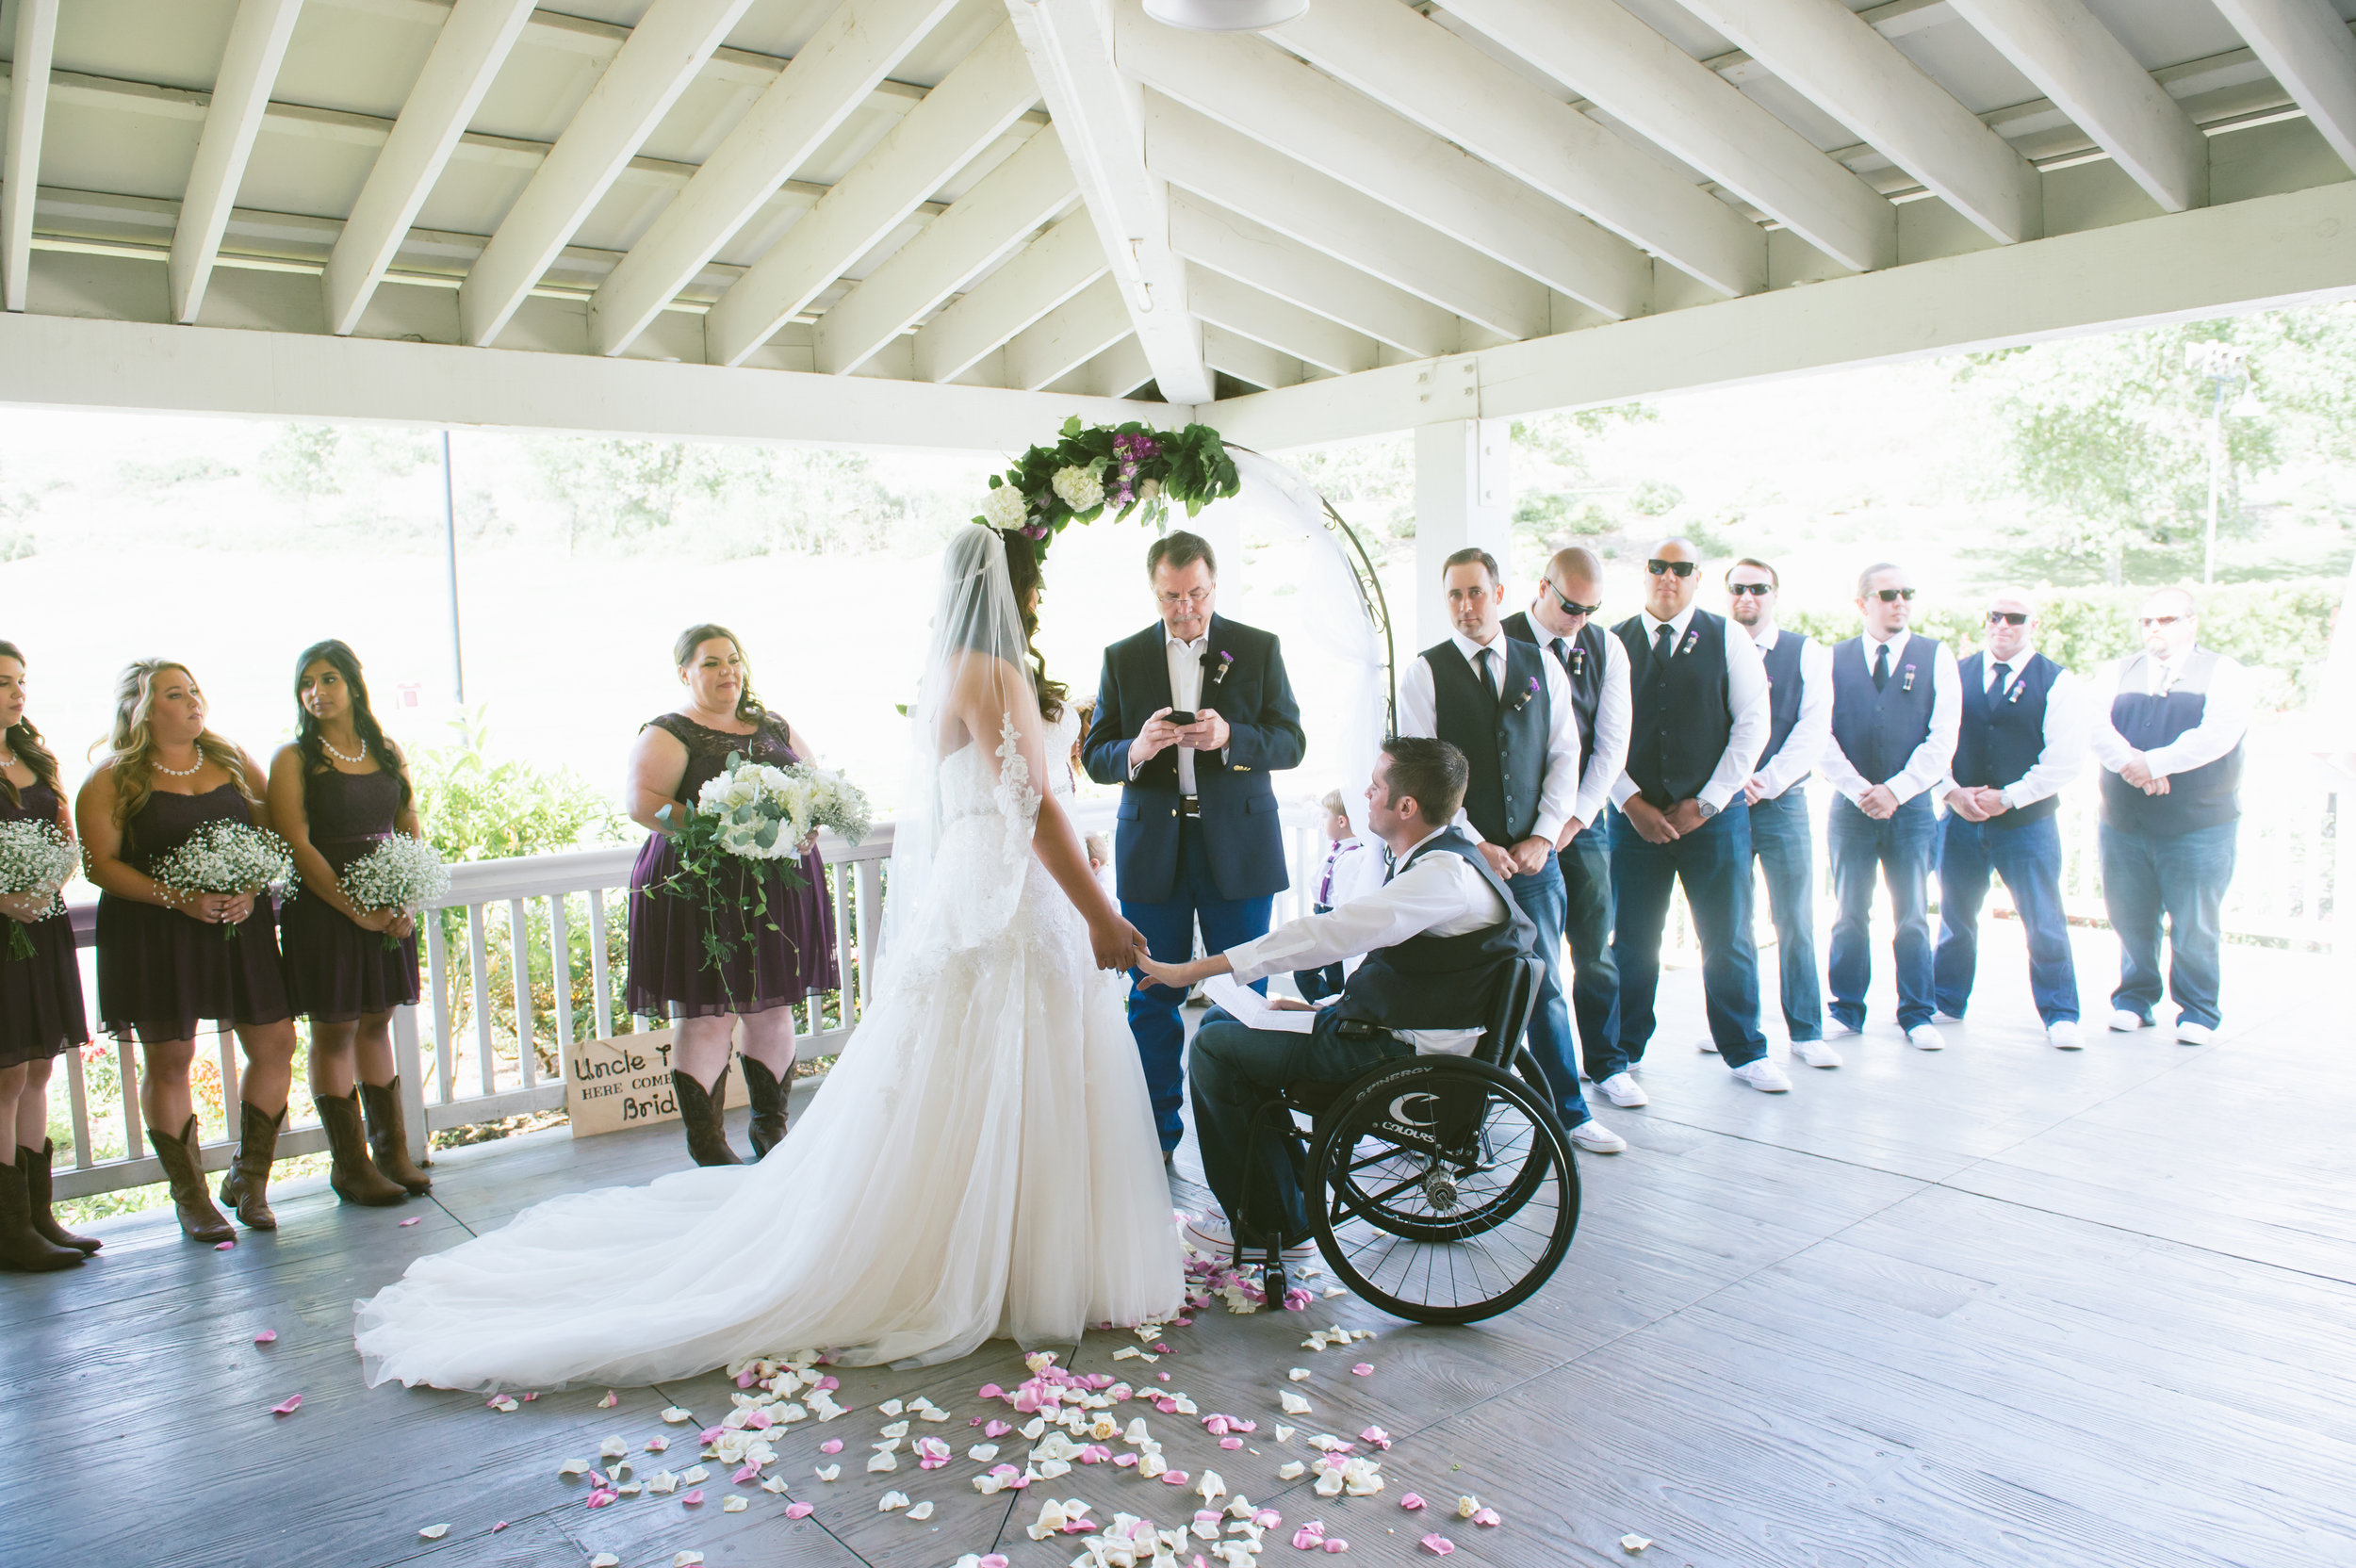 18strawberryfarmsweddingpicturesmichellejohnsonphotography.jpg